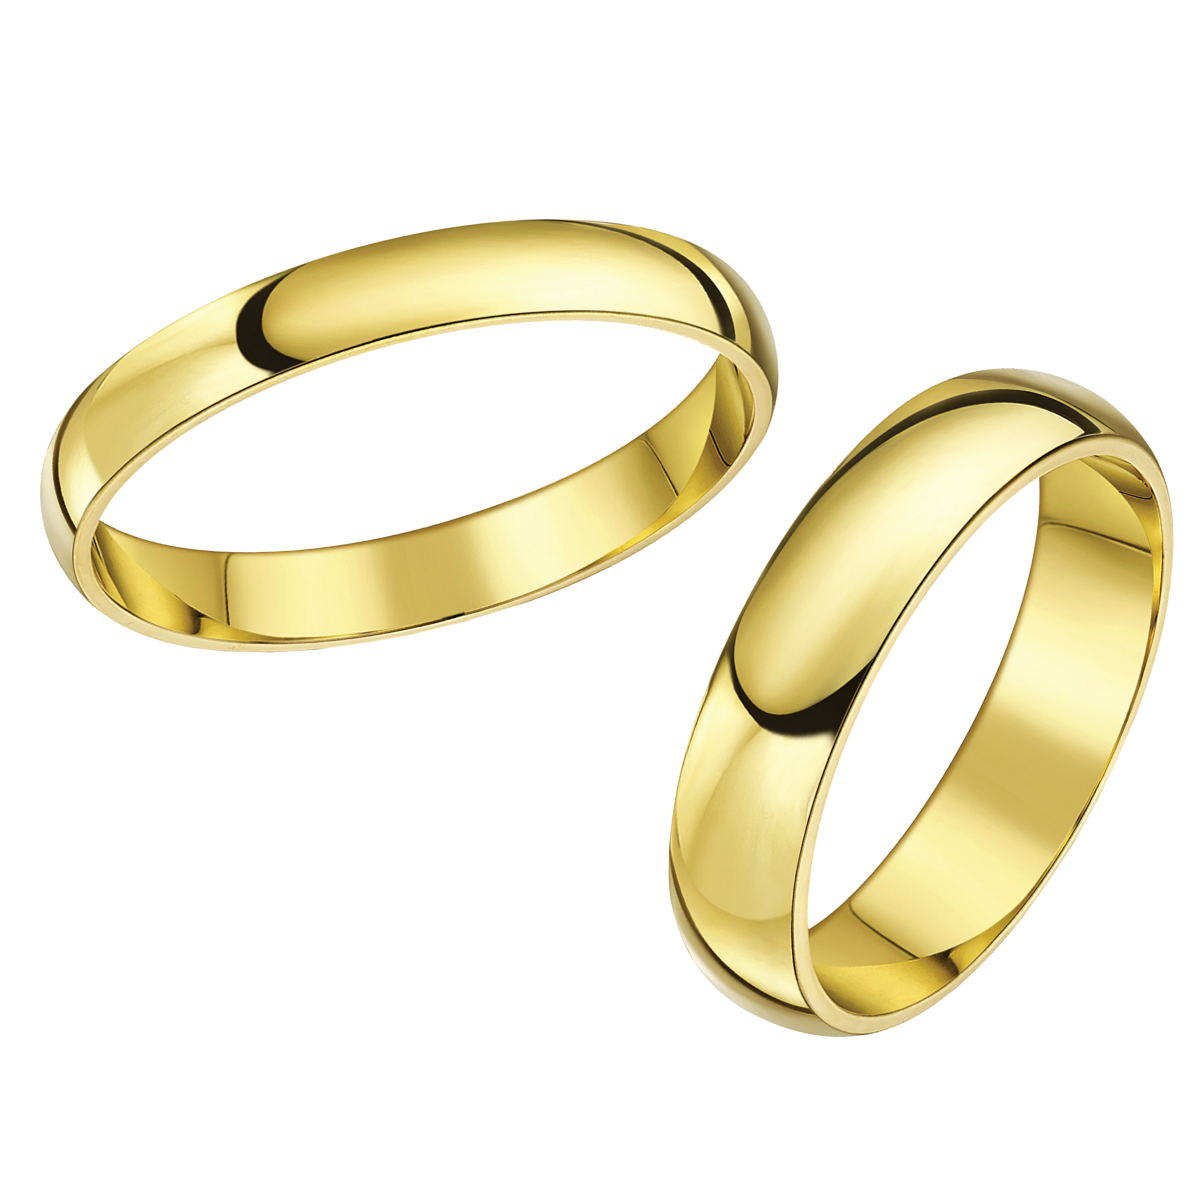 Matching yellow gold wedding ring sets his hers sets for 9ct gold wedding ring sets